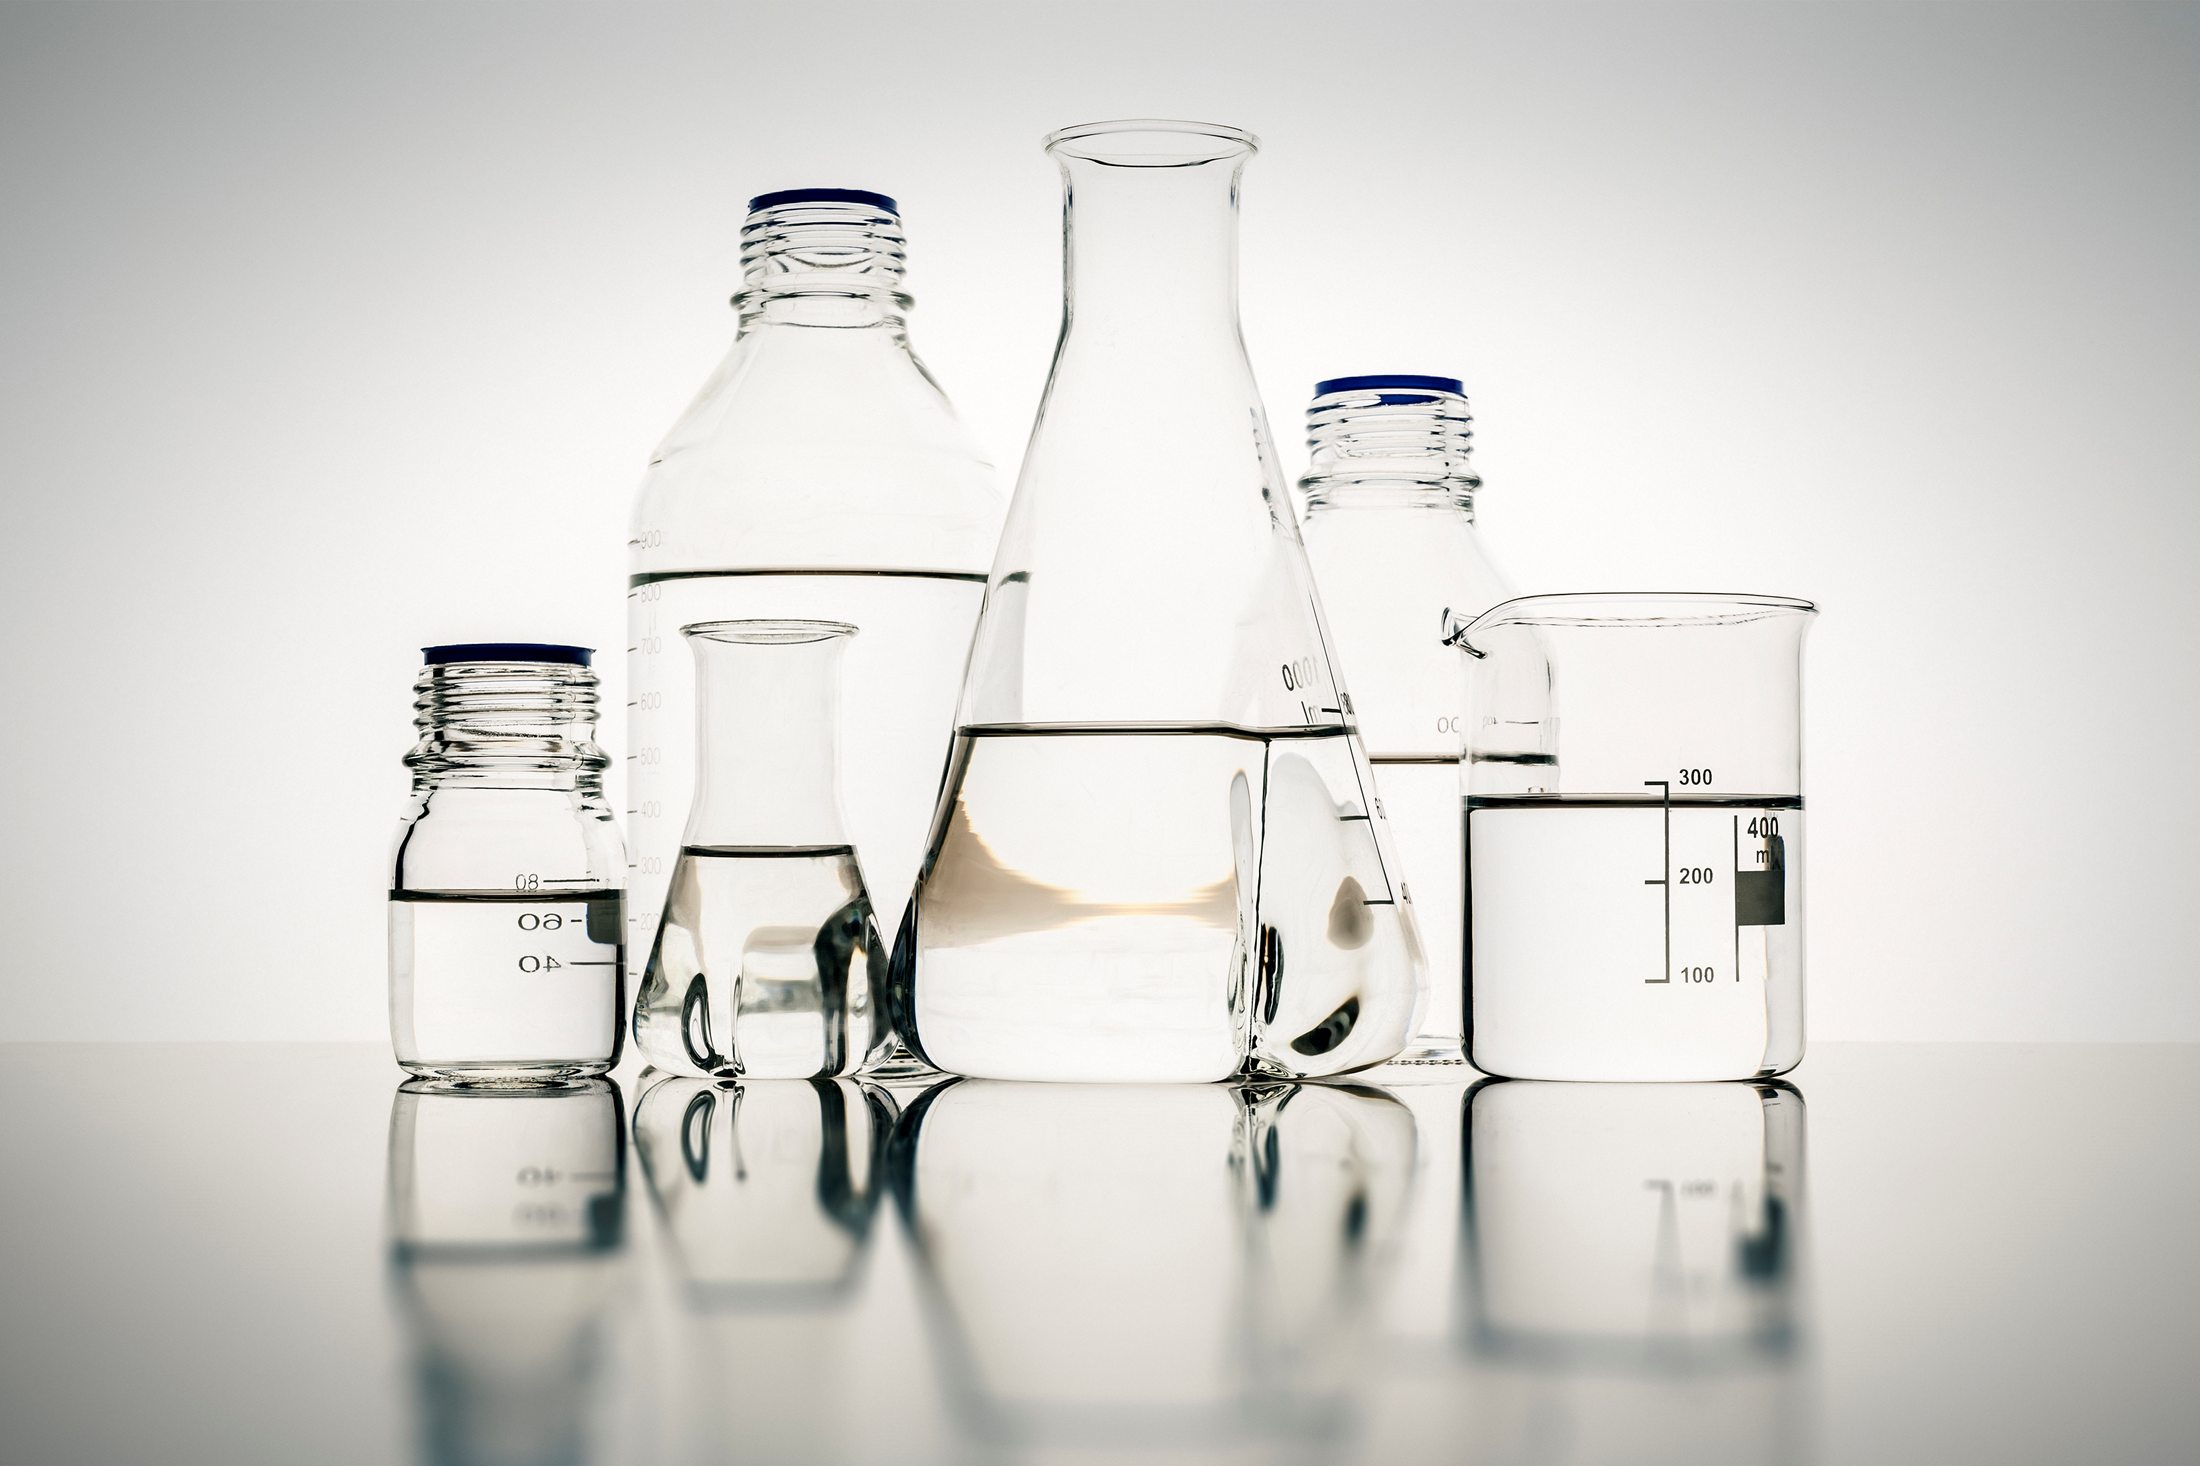 stock-photo-an-image-of-some-glass-bottl-471569.png